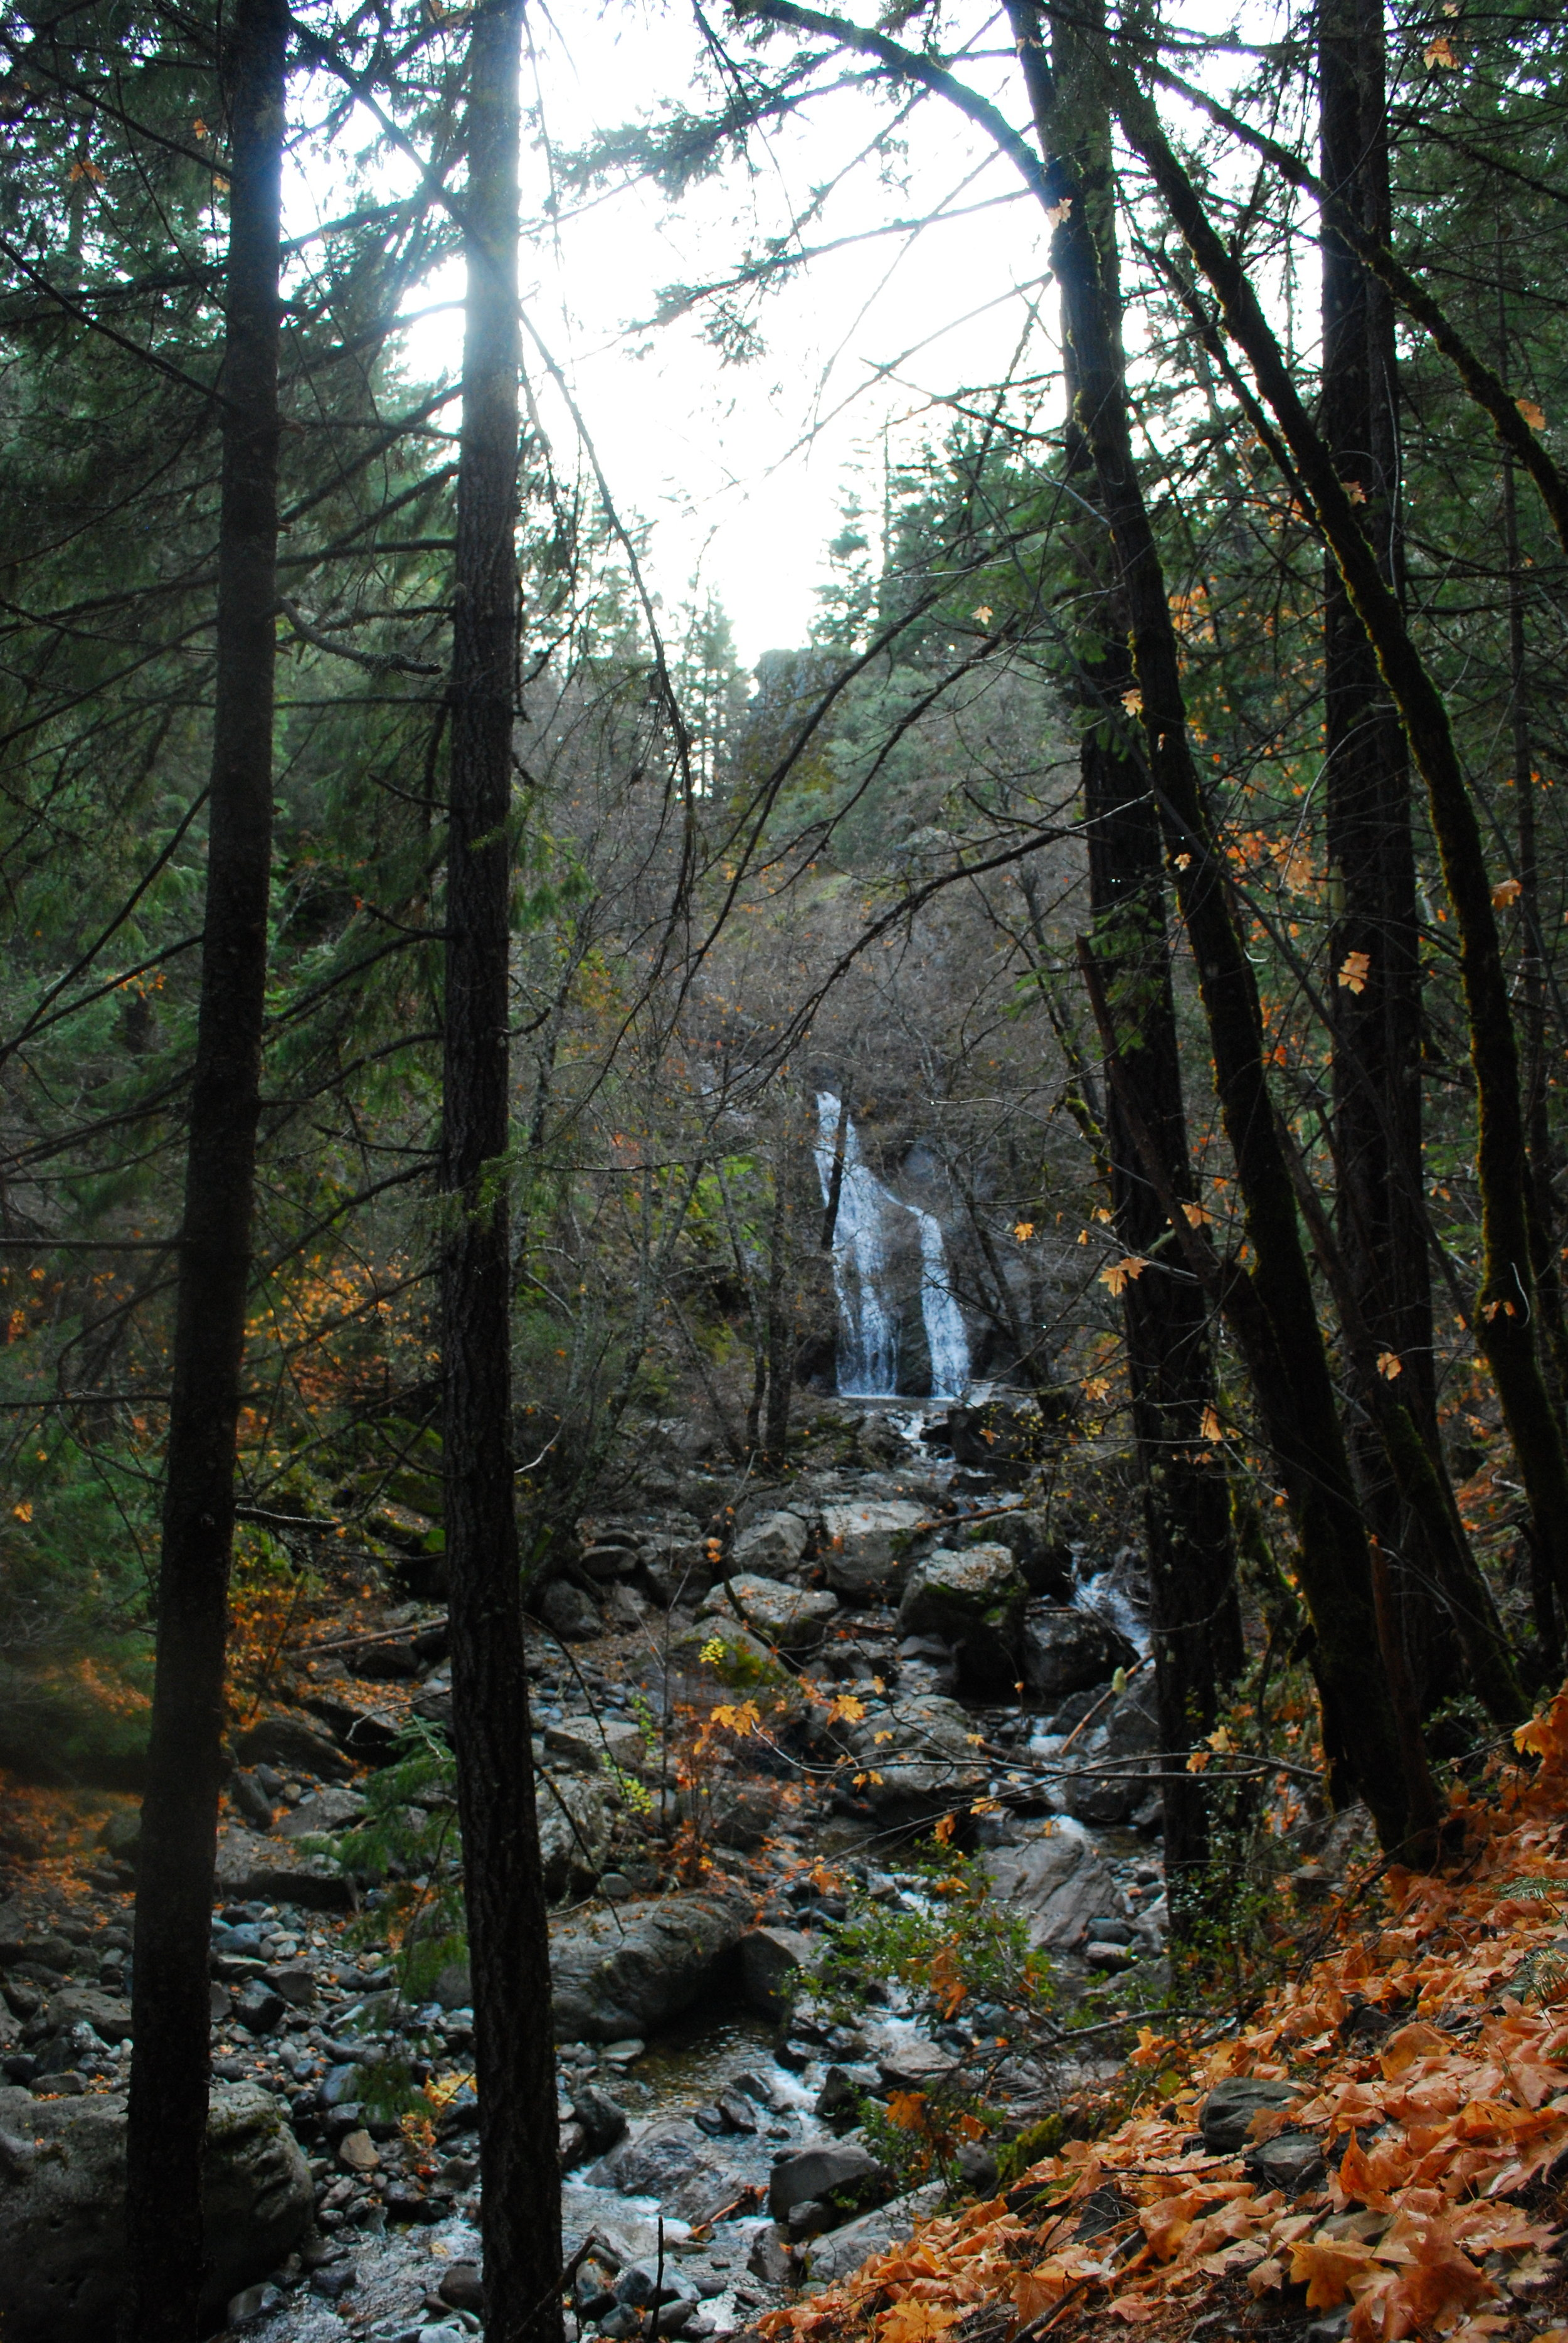 Excursion - Ney Springs & Faery Falls with Gage and Casey